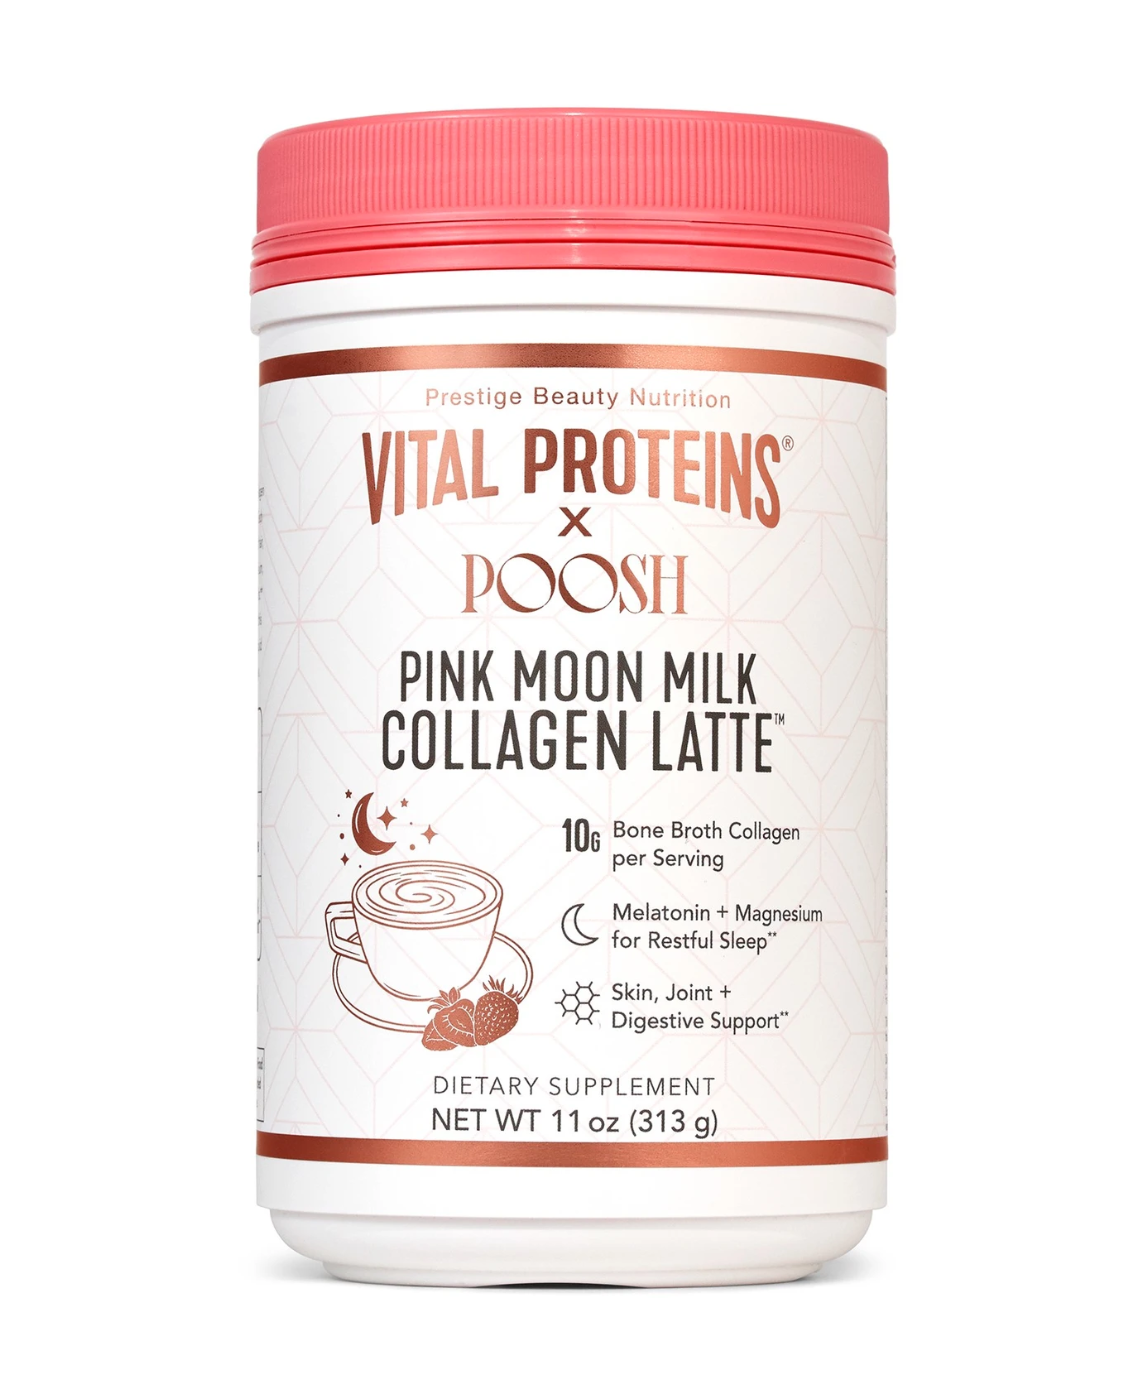 PINK MOON MILK COLLAGEN LATTE